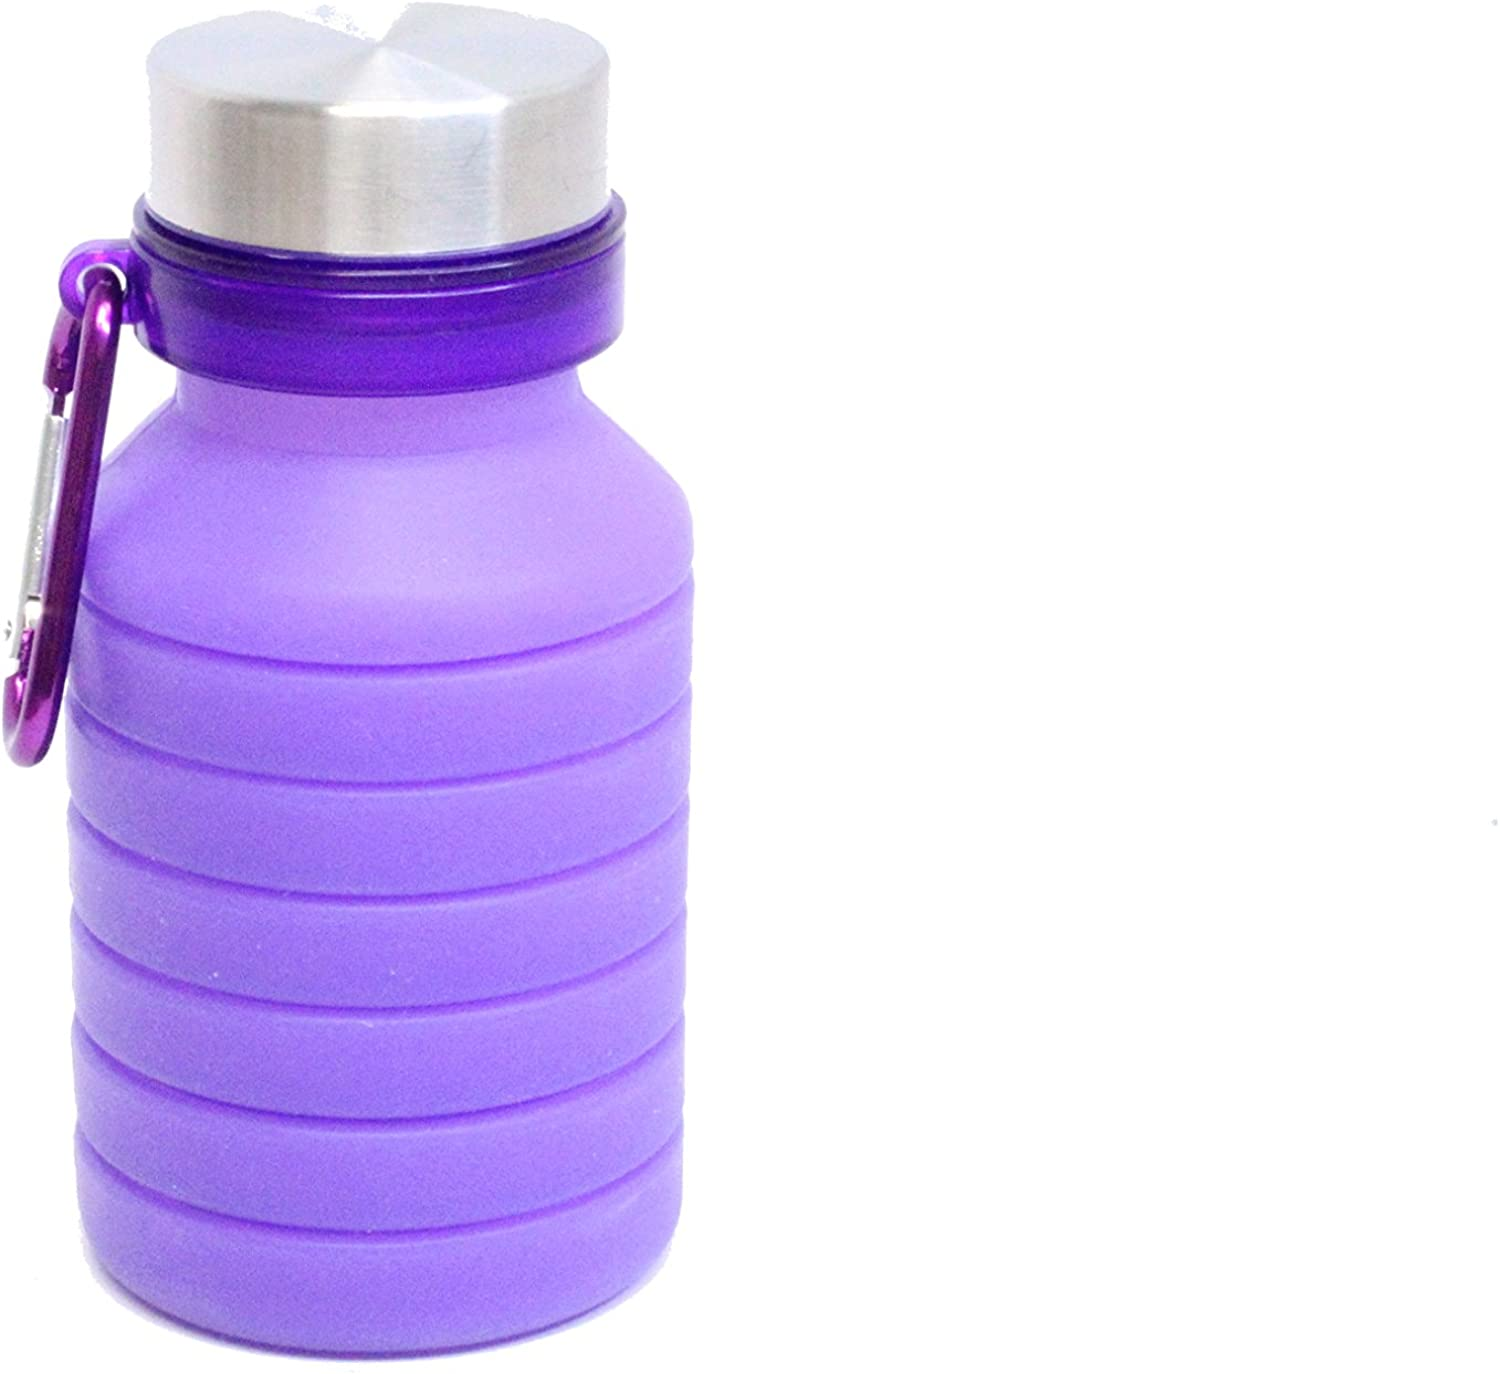 Collapsible Soft Water Bottle  Silicone Sports Bottle  Expandable Water Bottle  Traveling, Camping, Fitness Portable